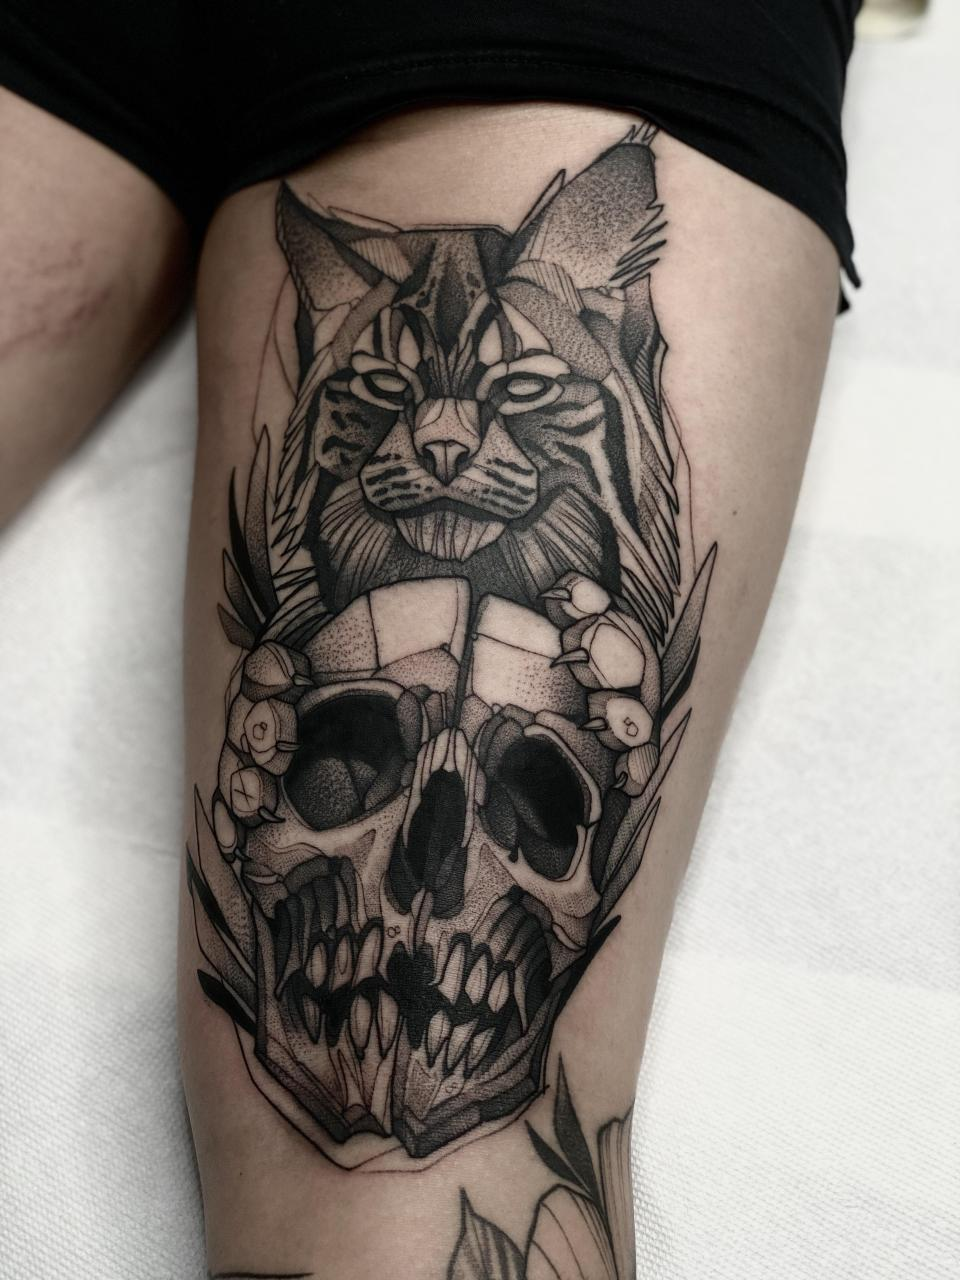 Back of the thigh bobcat and skull piece done by Max LaCroix at Akara Arts in Milwaukee, WI